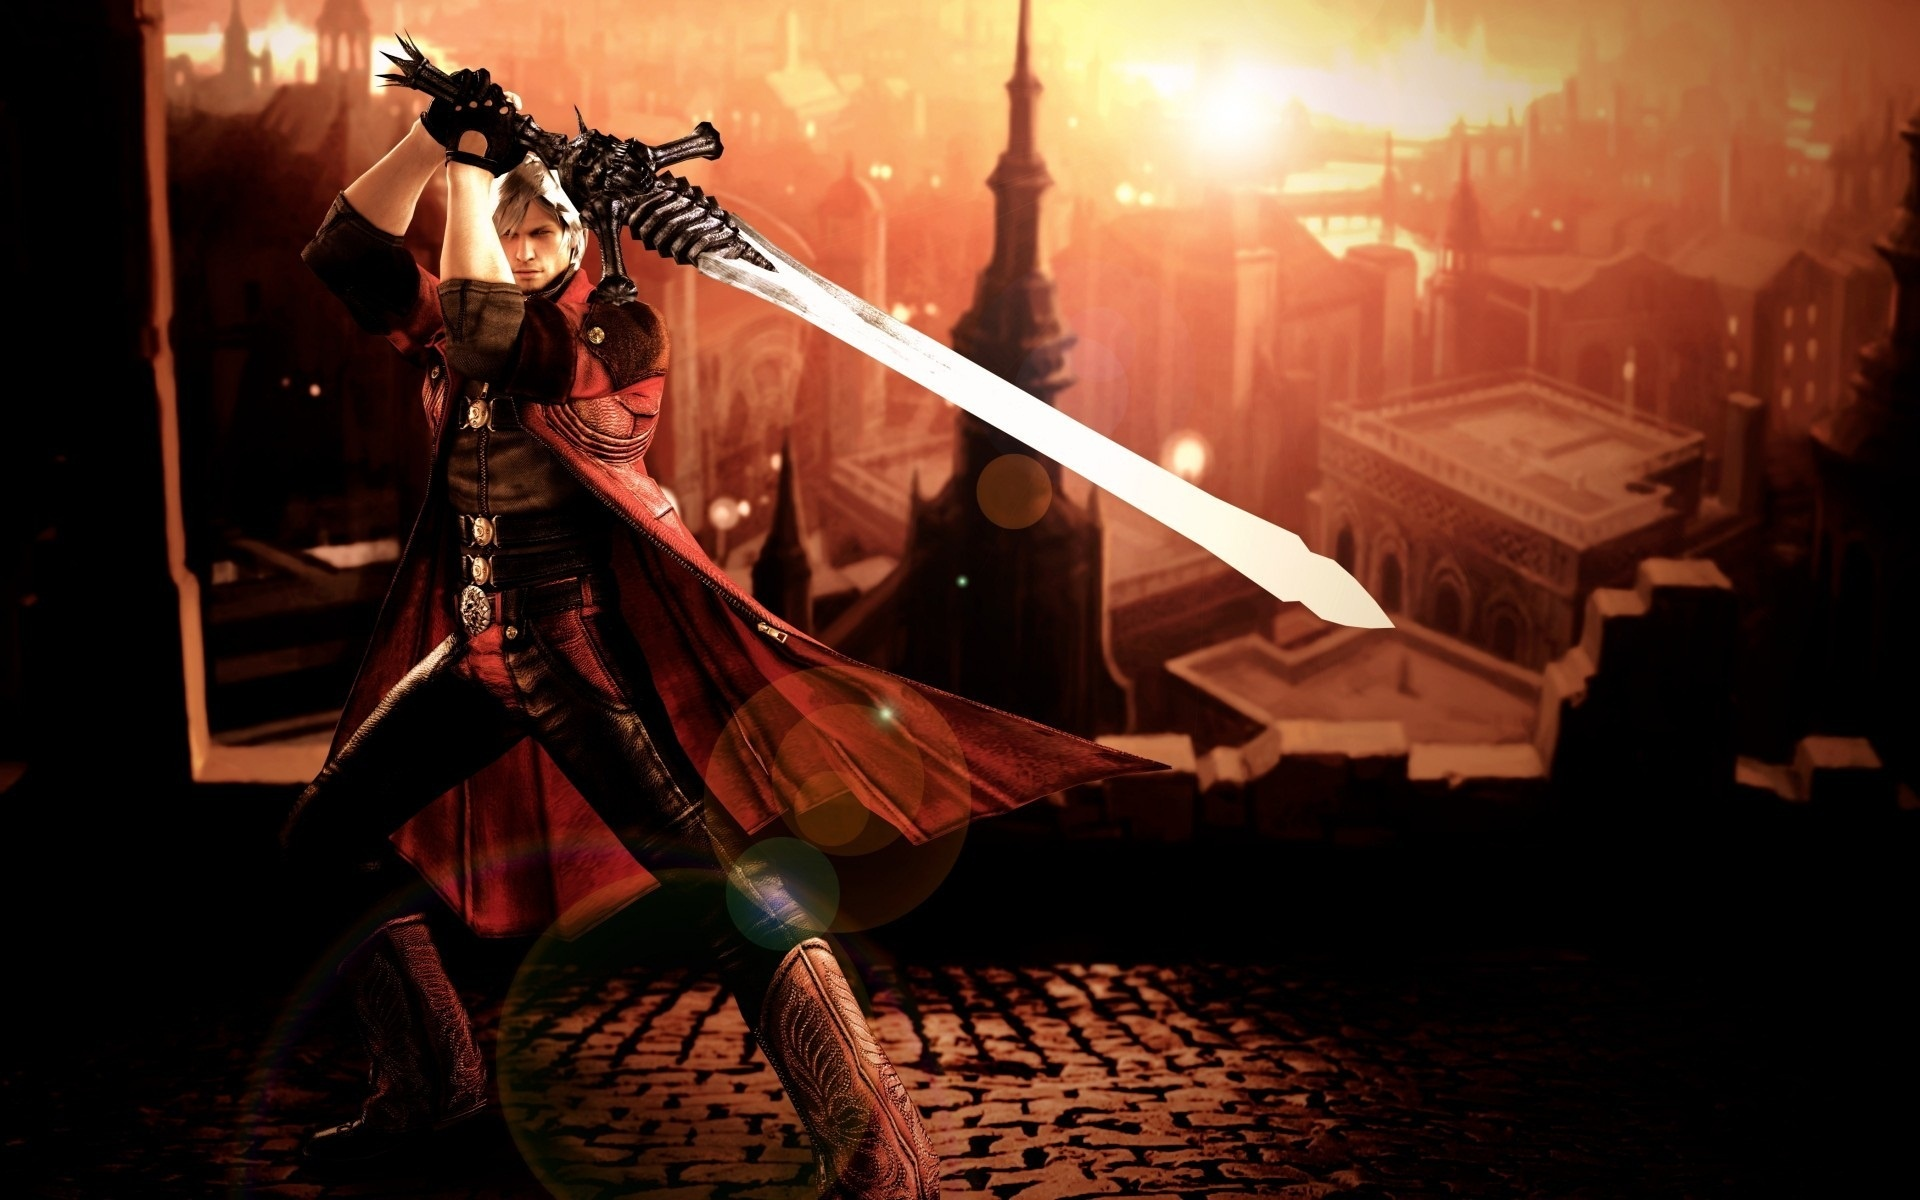 Devil May Cry 4 Dante Wallpapers 1920x1200 427616